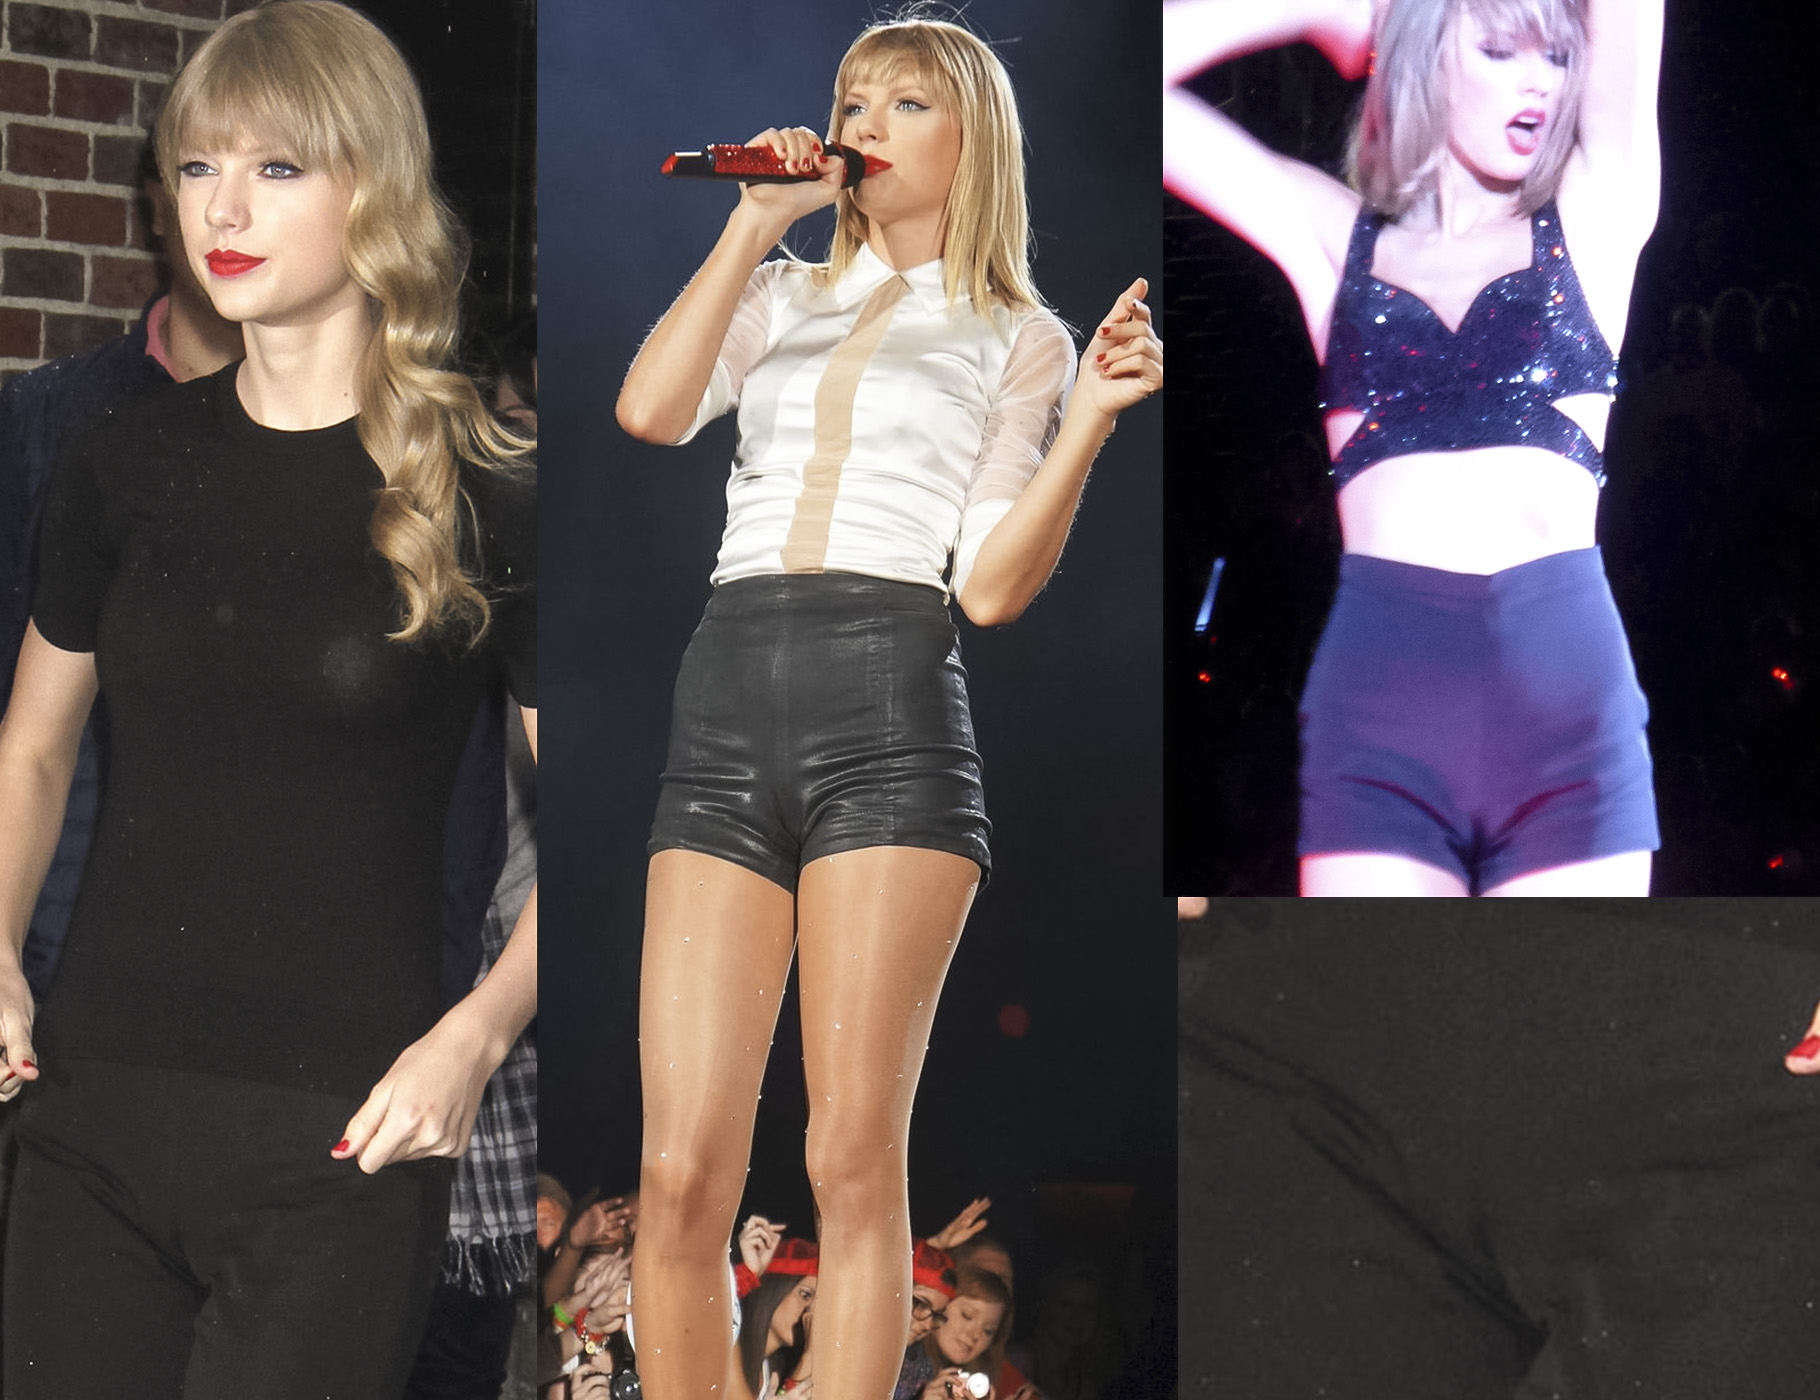 Taylor Swift camel toe - Taylor Swift cameltoe - Taylor Swift sexy